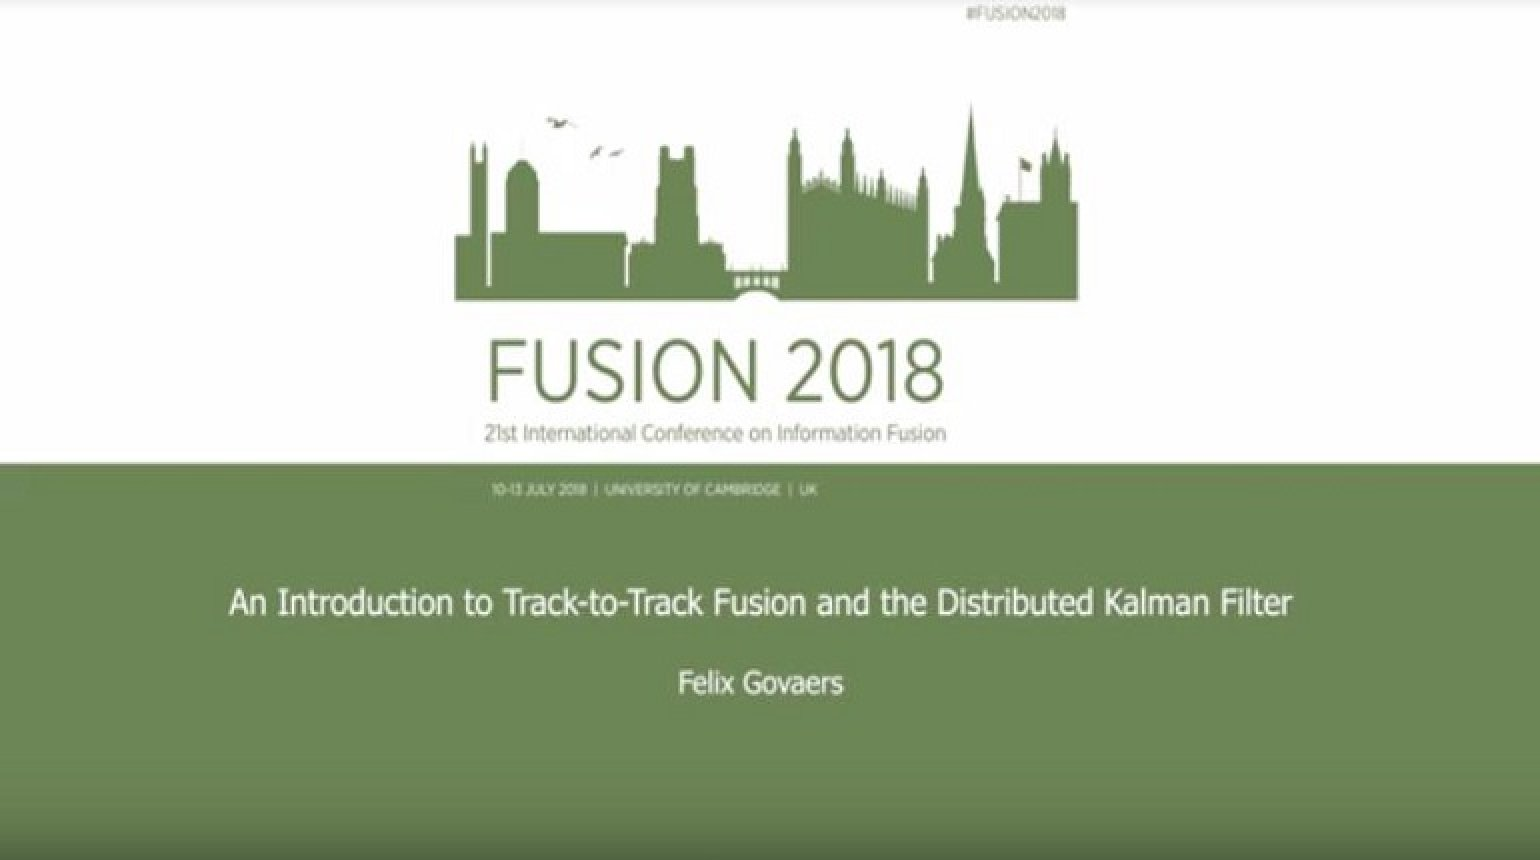 An Introduction to Track to Track Fusion and the Distributed Kalman